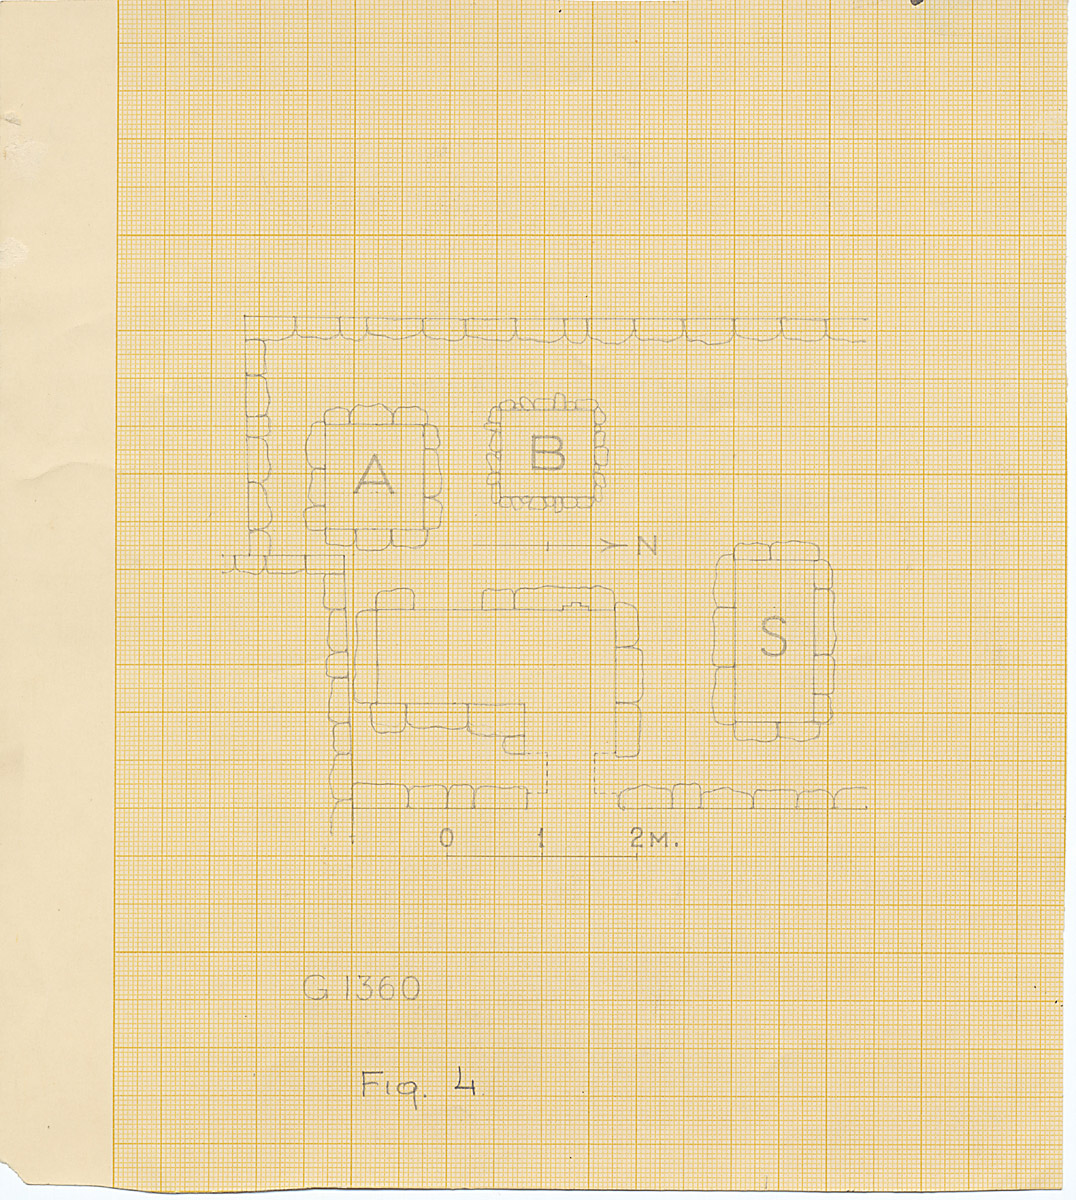 Maps and plans: G 1360, Plan of chapel area